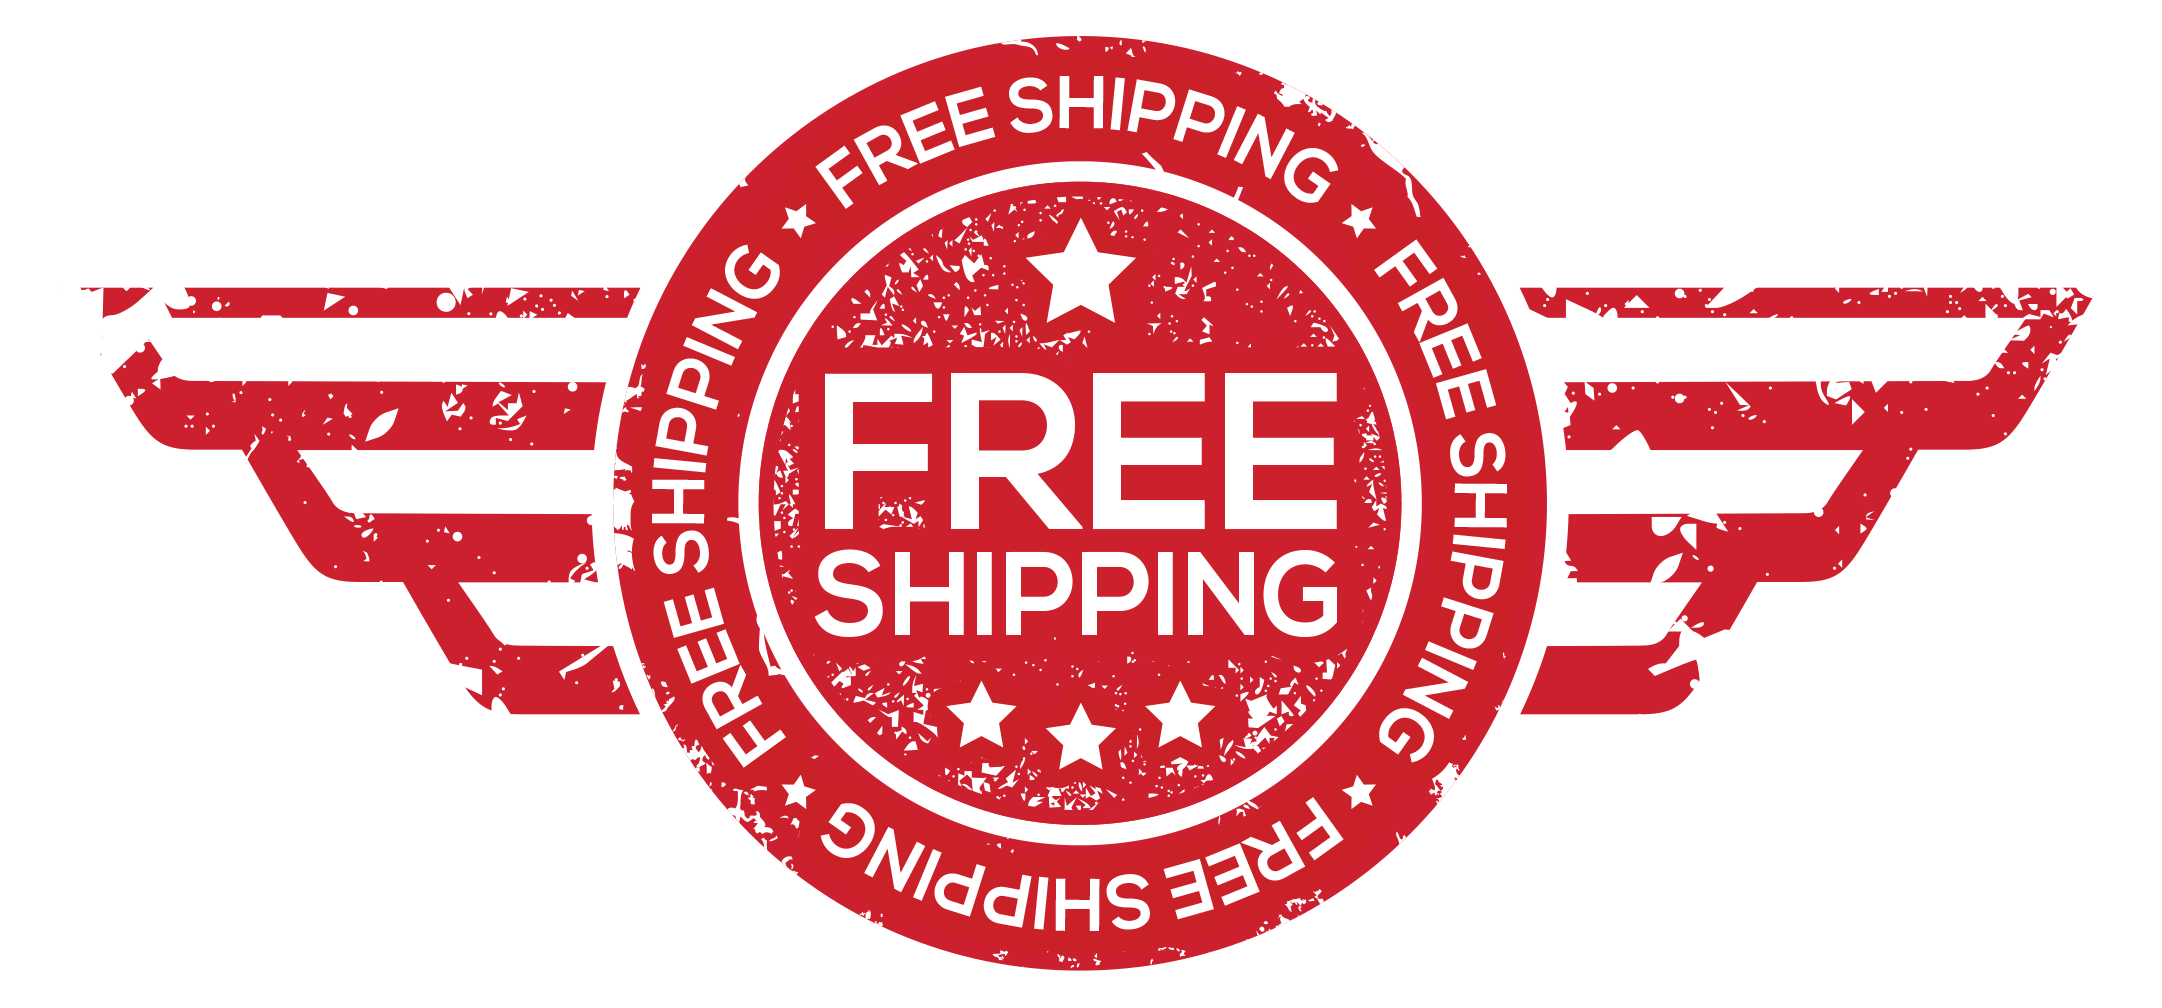 Free Shipping For Online Orders!